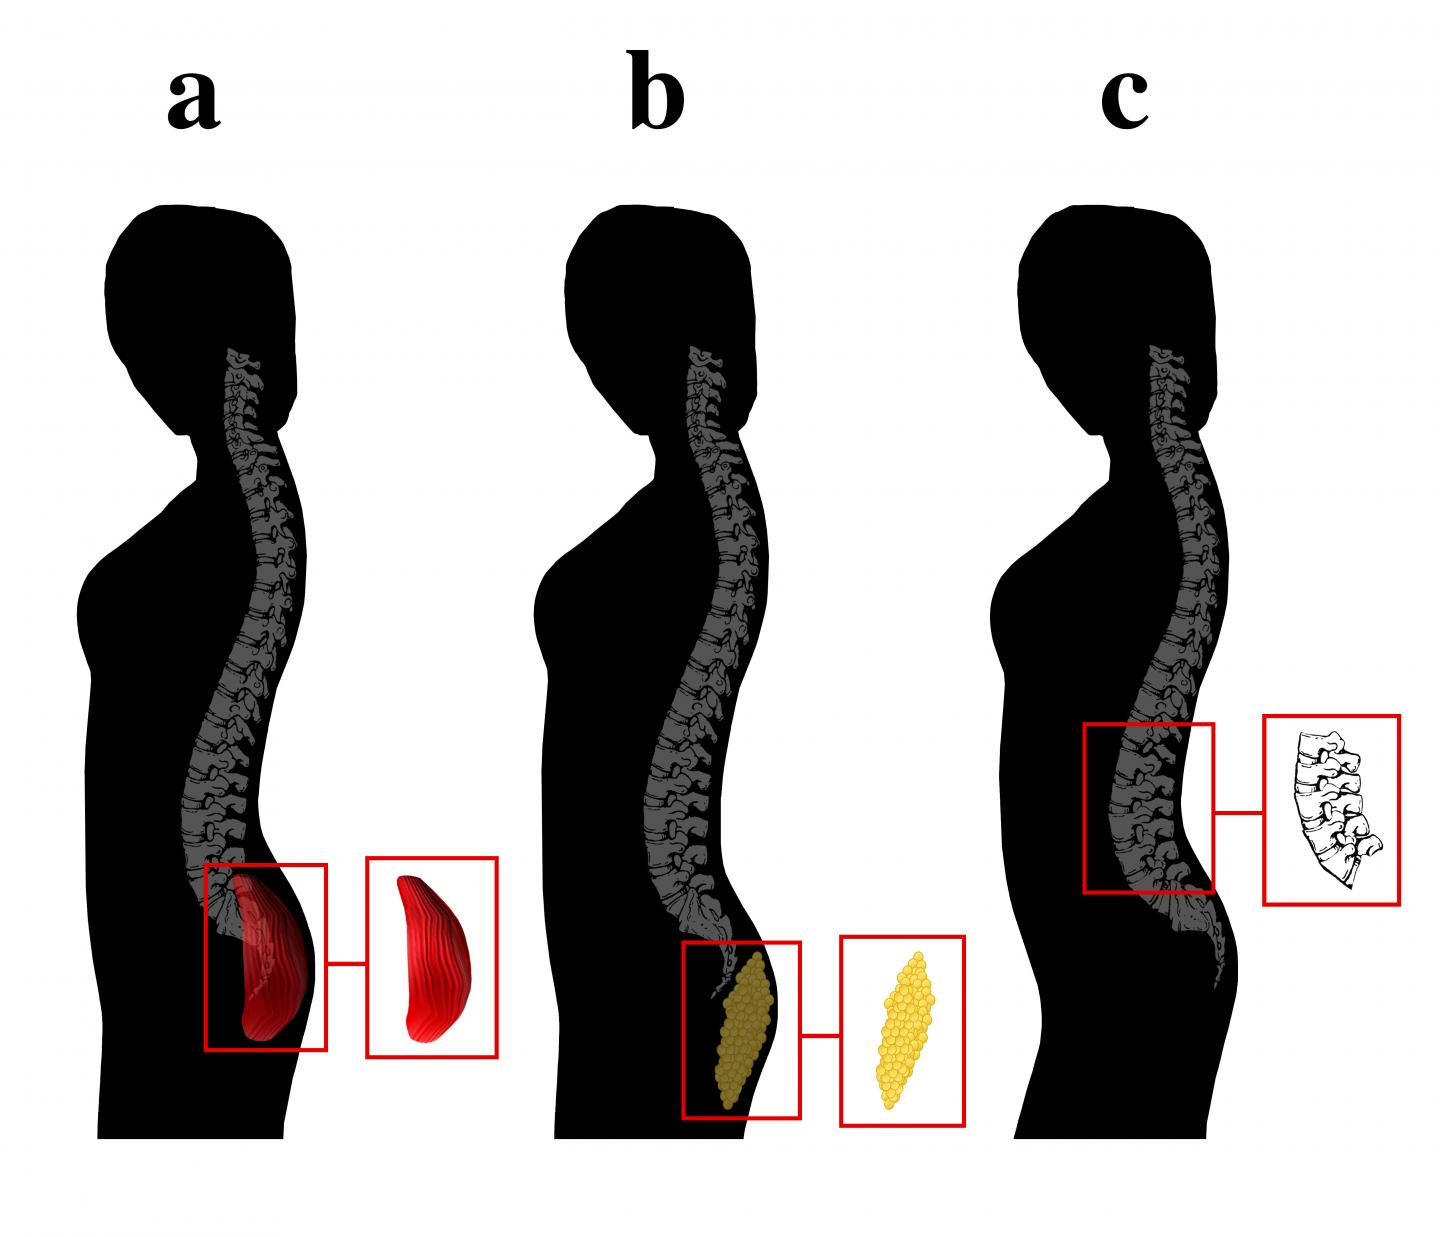 Gluteal Development Indicating Physical Fitness